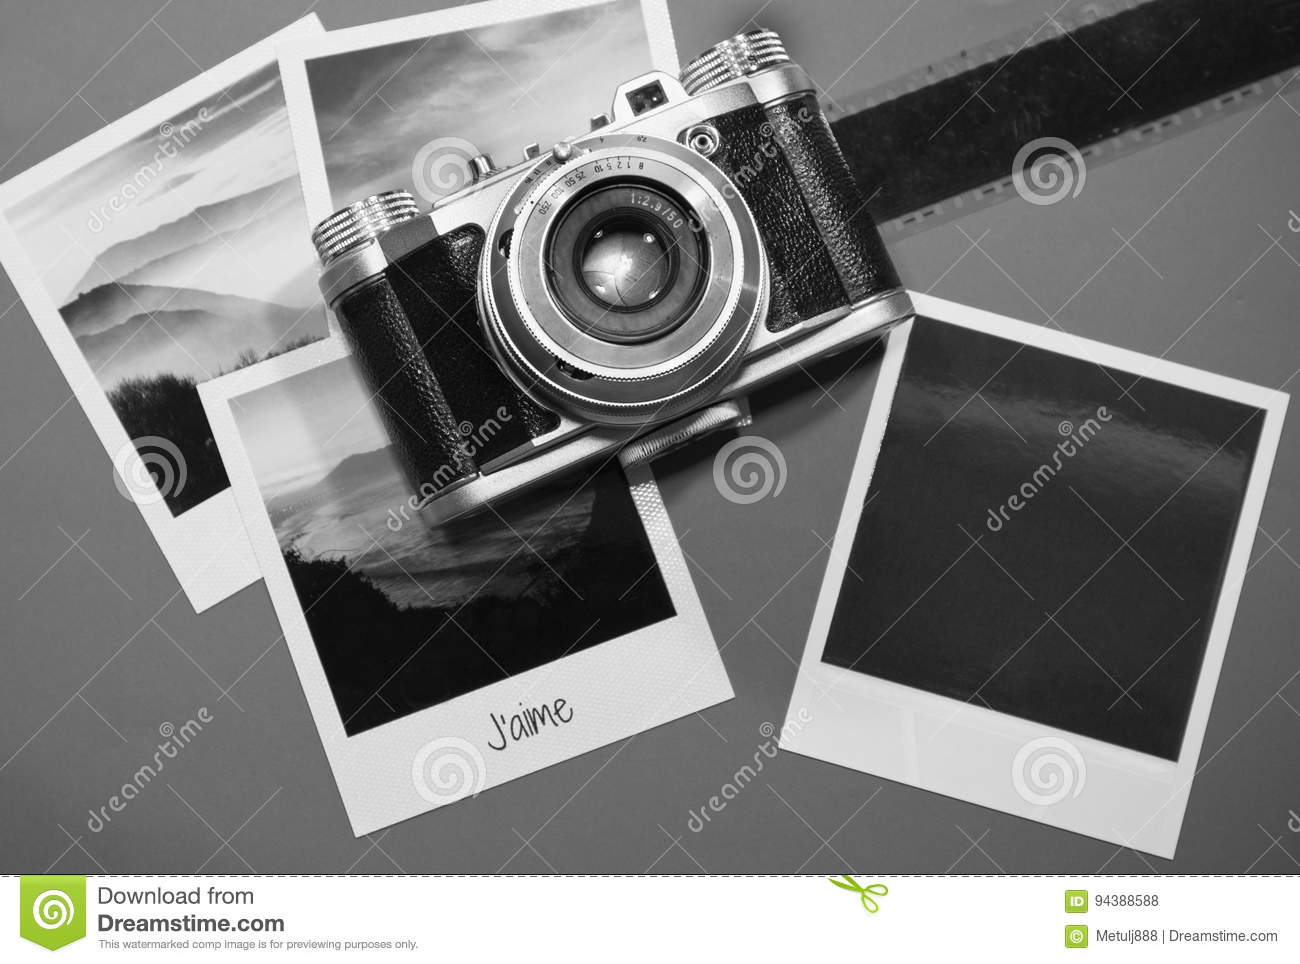 Retro vintage four instant photo frames cards on grey background with images of nature and blank photo with old camera film strip